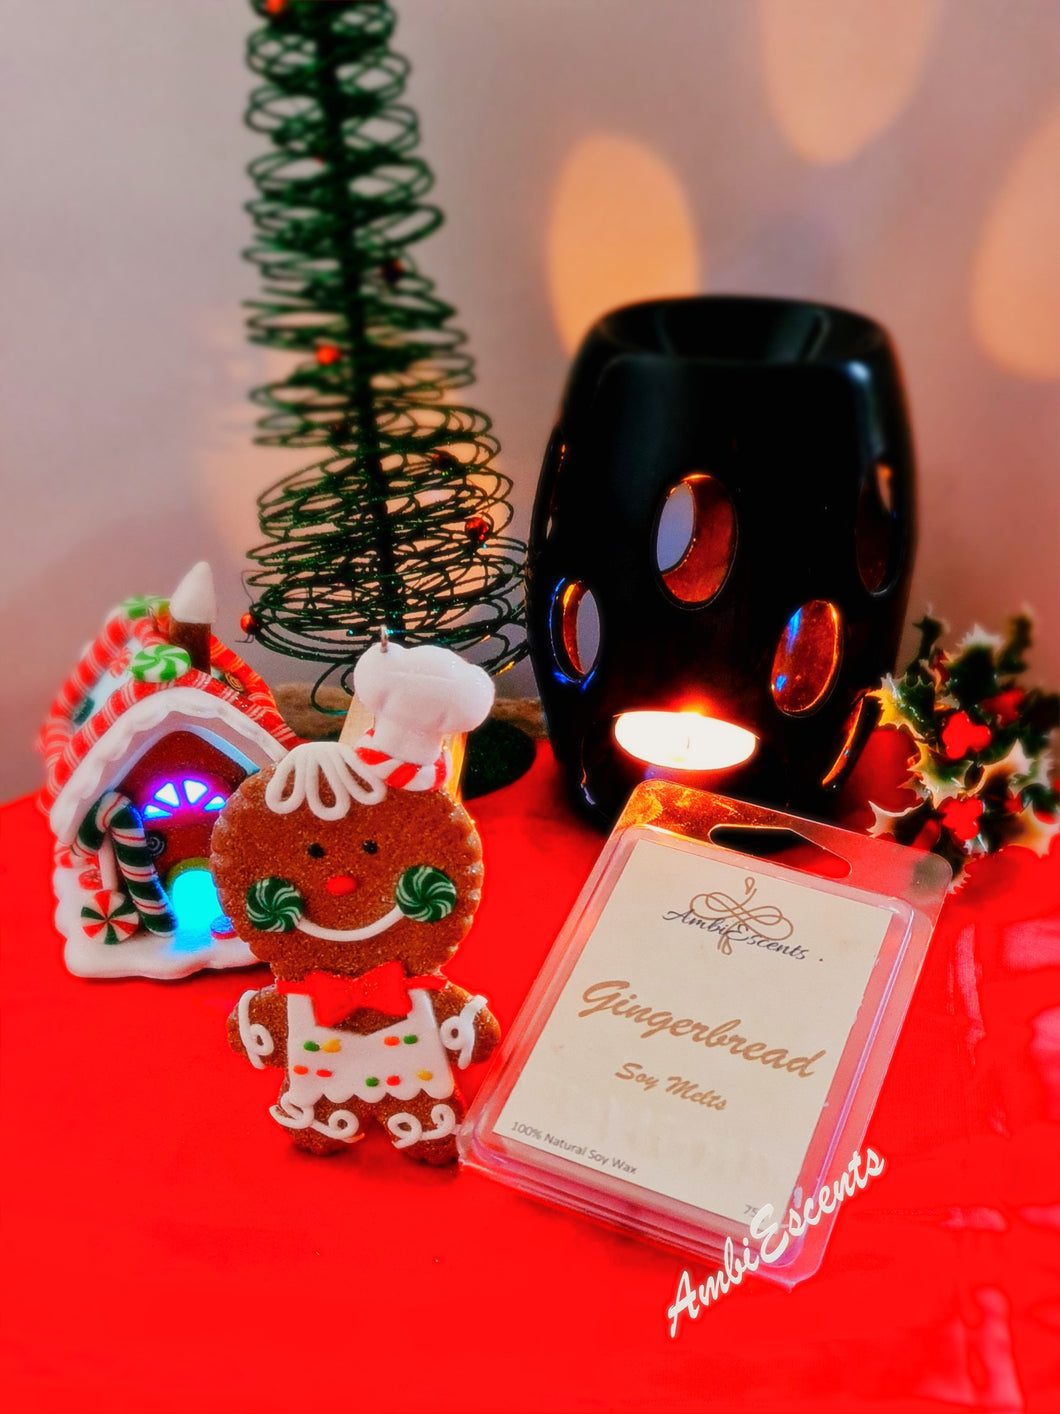 Gingerbread Soy Wax Melt